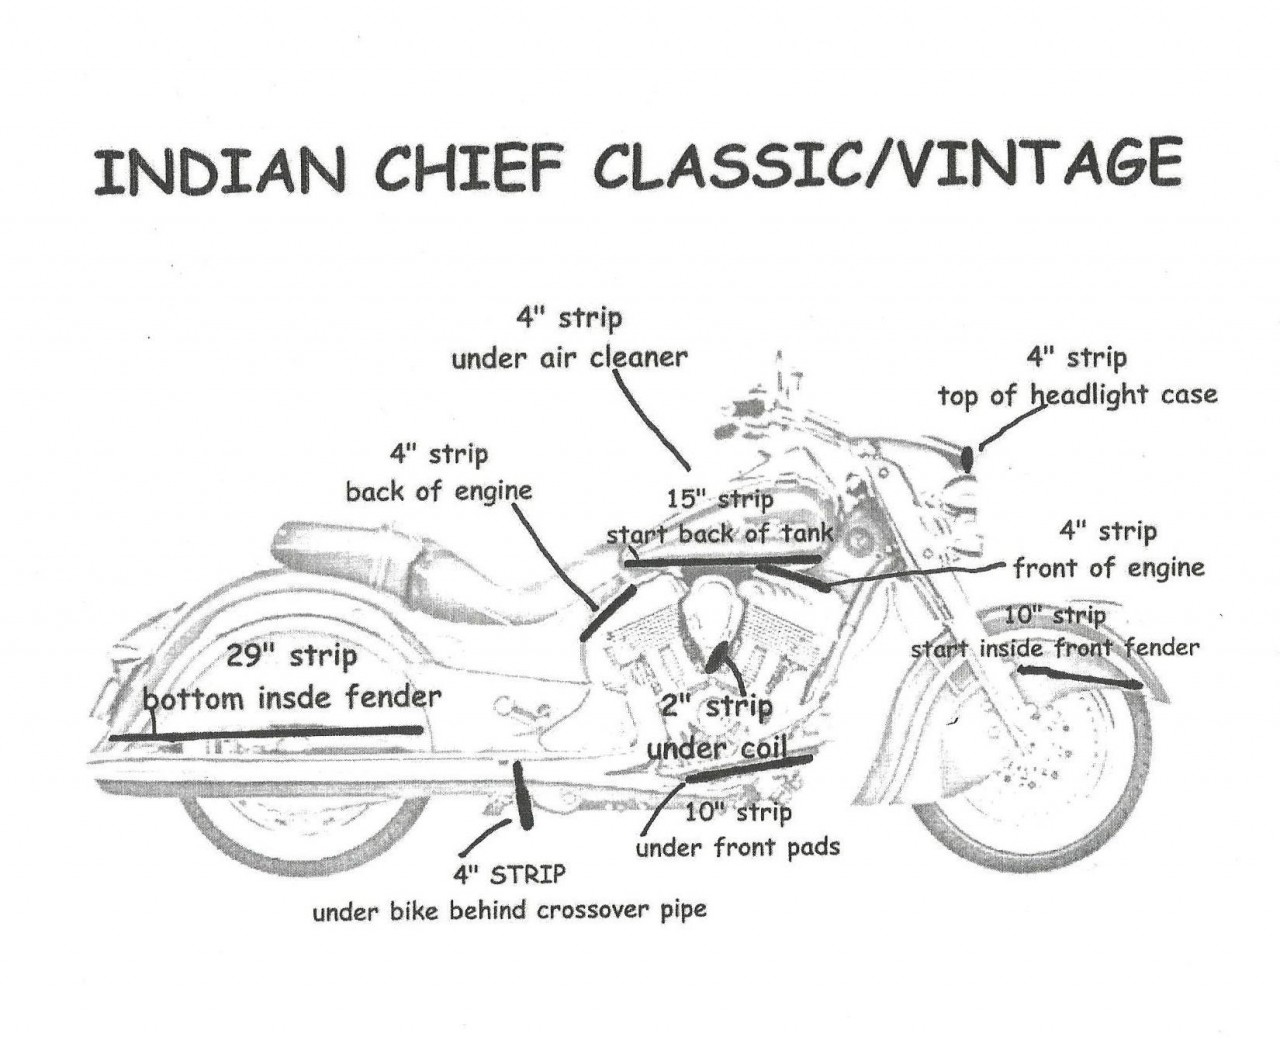 Indian chief wiring diagram wiring diagrams schematics 1946 indian chief wiring diagram wiring diagram victory wiring diagrams indian chief parts electrical diagram 99 indian best site wiring harness 92 gmc cheapraybanclubmaster Image collections